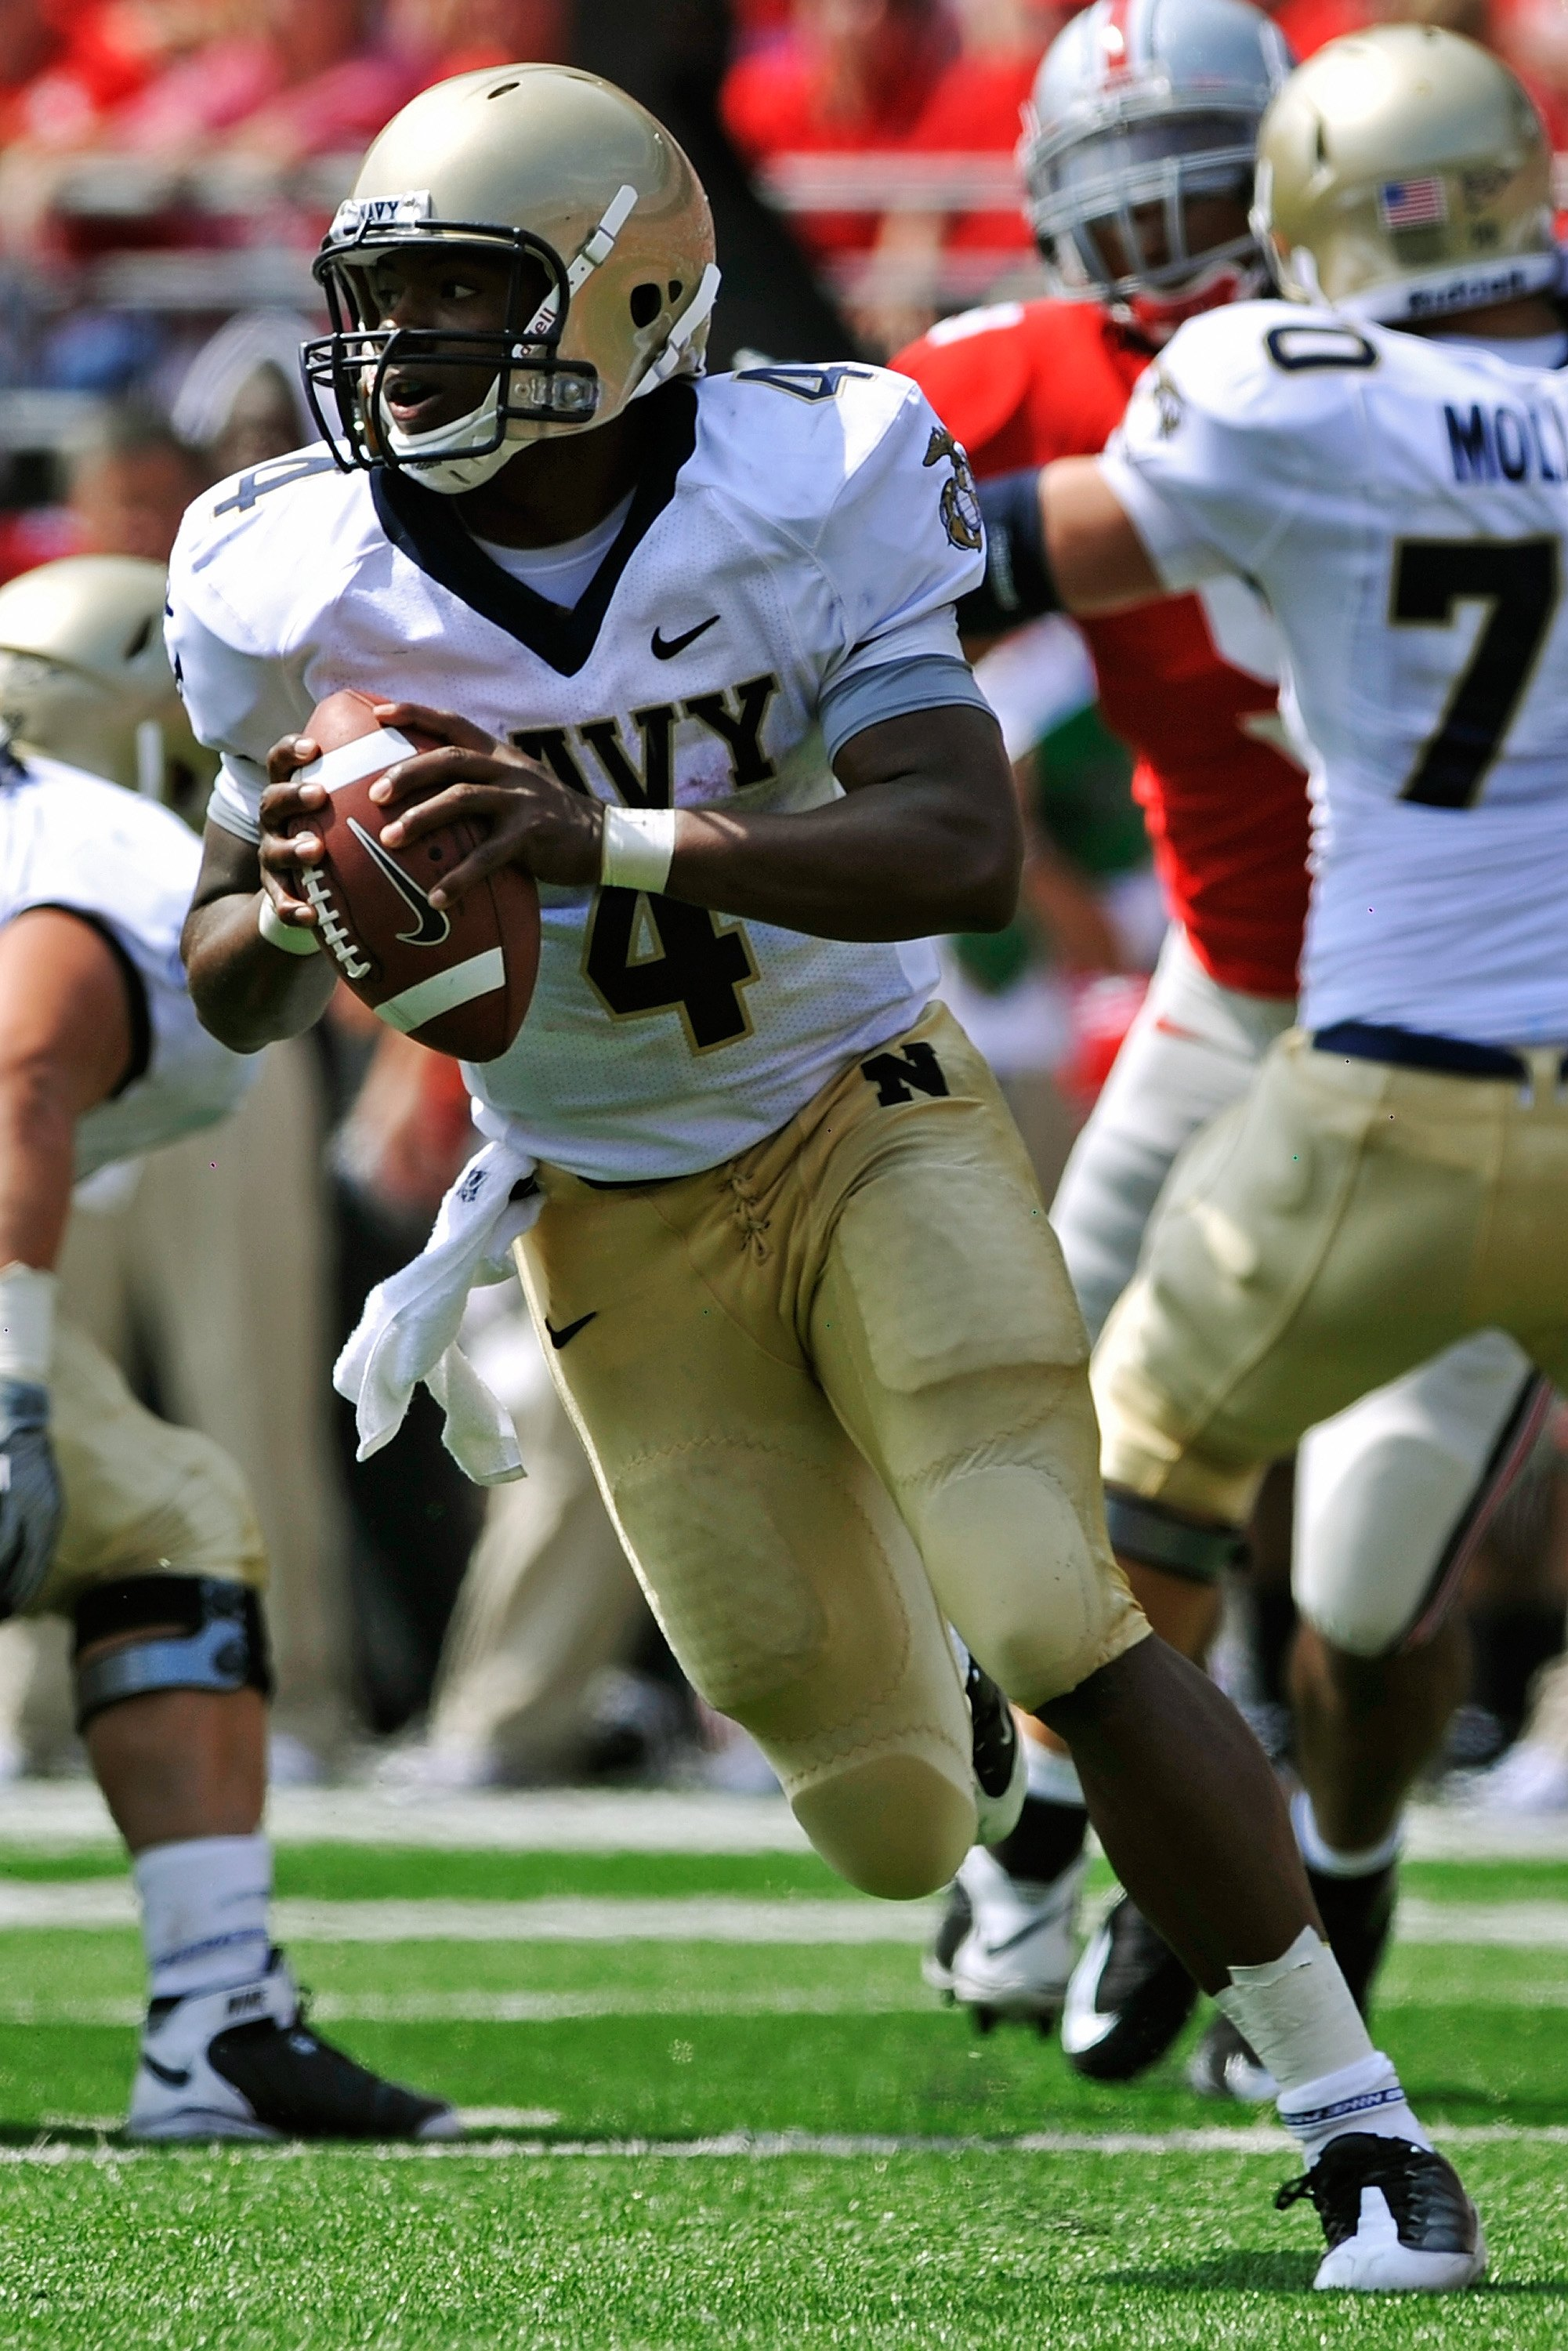 COLUMBUS, OH - SEPTEMBER 05:  Quarterback Ricky Dobbs #4 of the Navy Midshipmen runs with the ball against the Ohio State Buckeyes at Ohio Stadium on September 5, 2009 in Columbus, Ohio.  (Photo by Jamie Sabau/Getty Images)